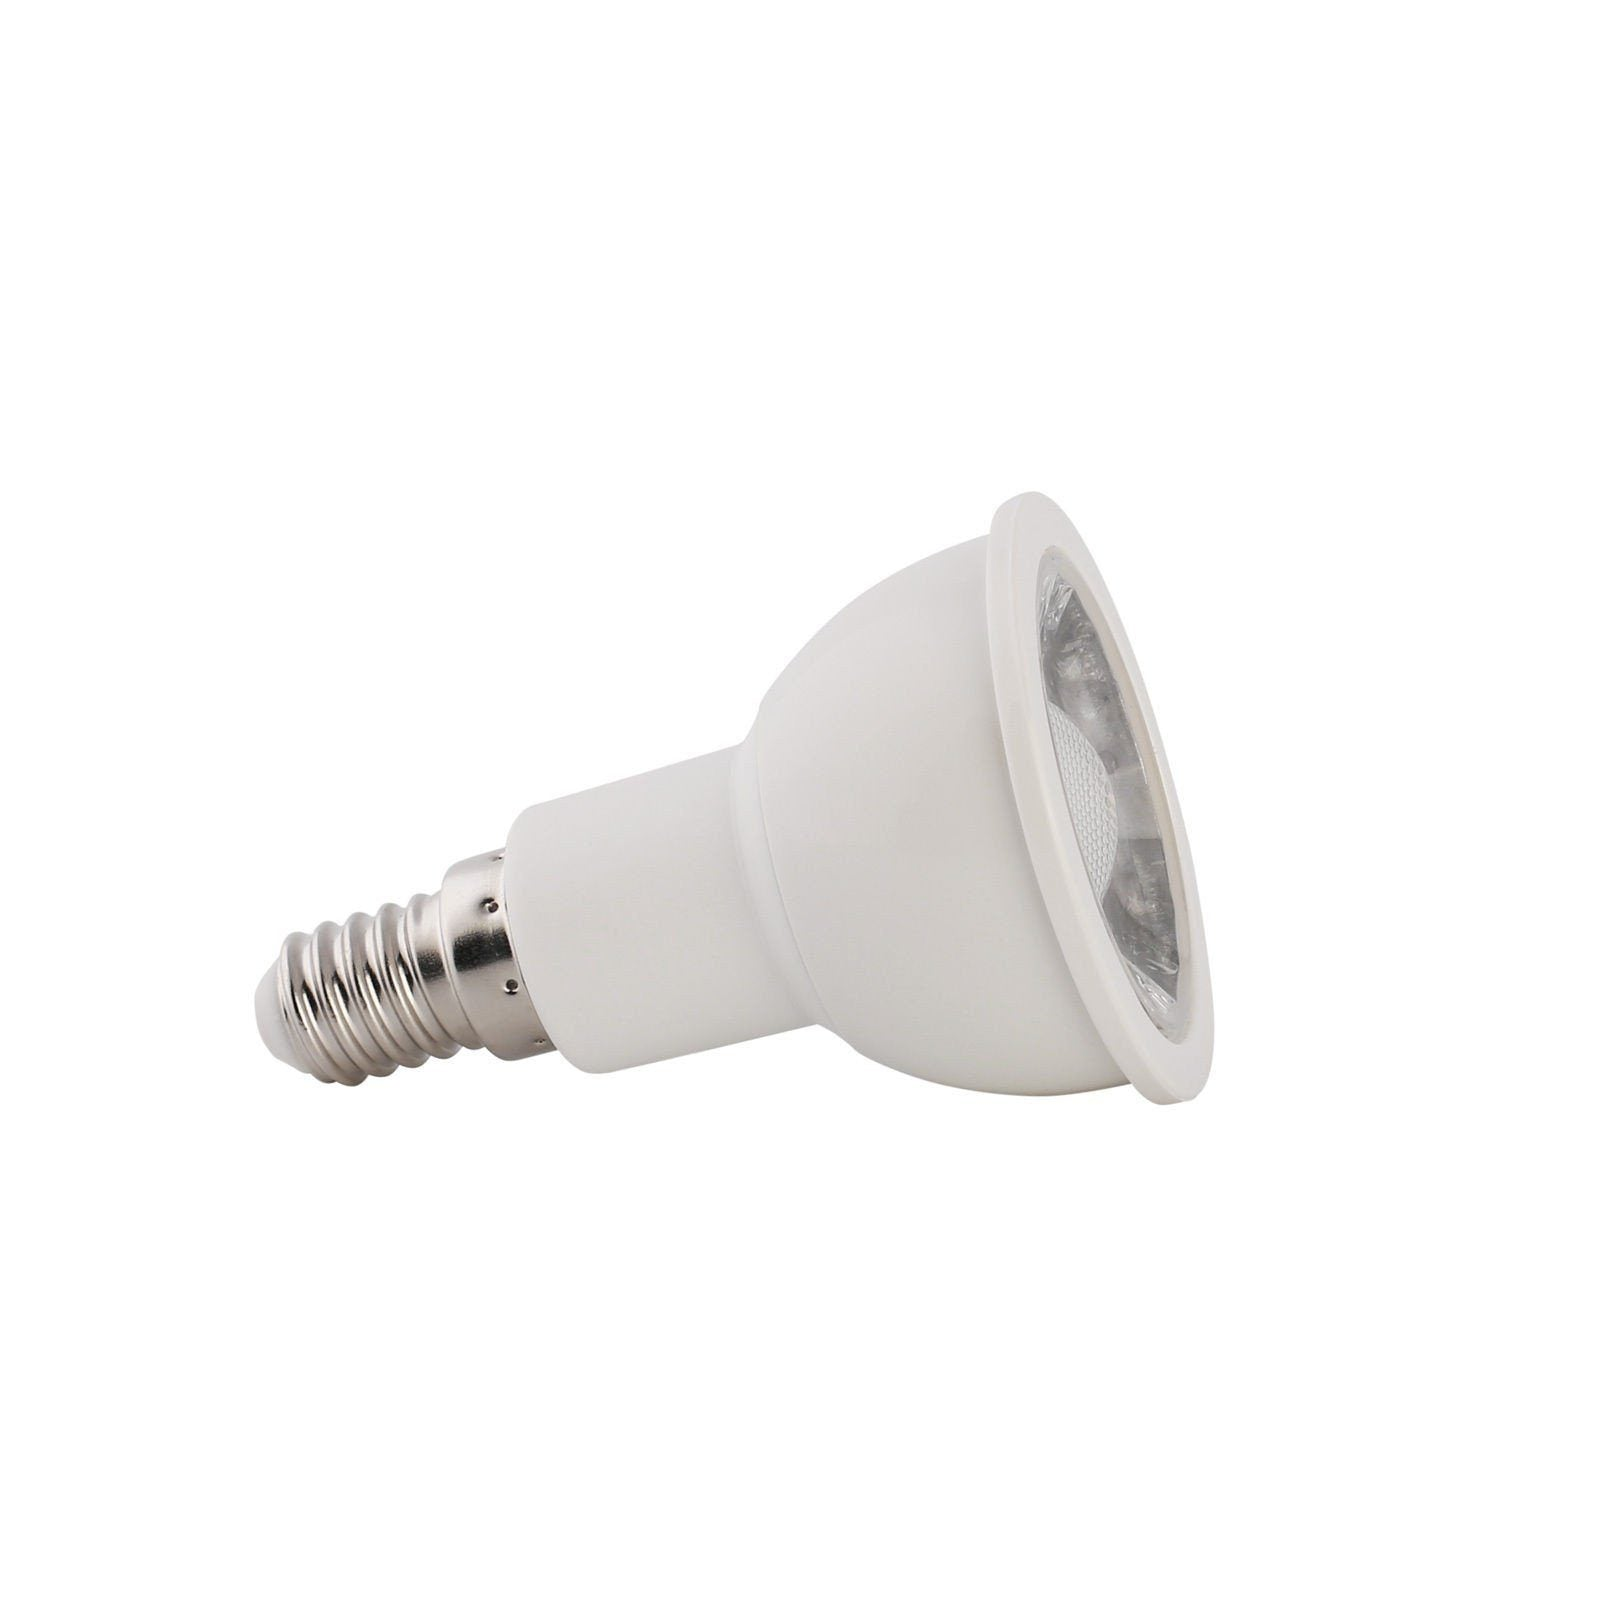 Hayward SPX0592H E11 T4 Astrolite II Halogen White LED Home & Garden > Lighting > Light Bulbs Hayward Industrial Products